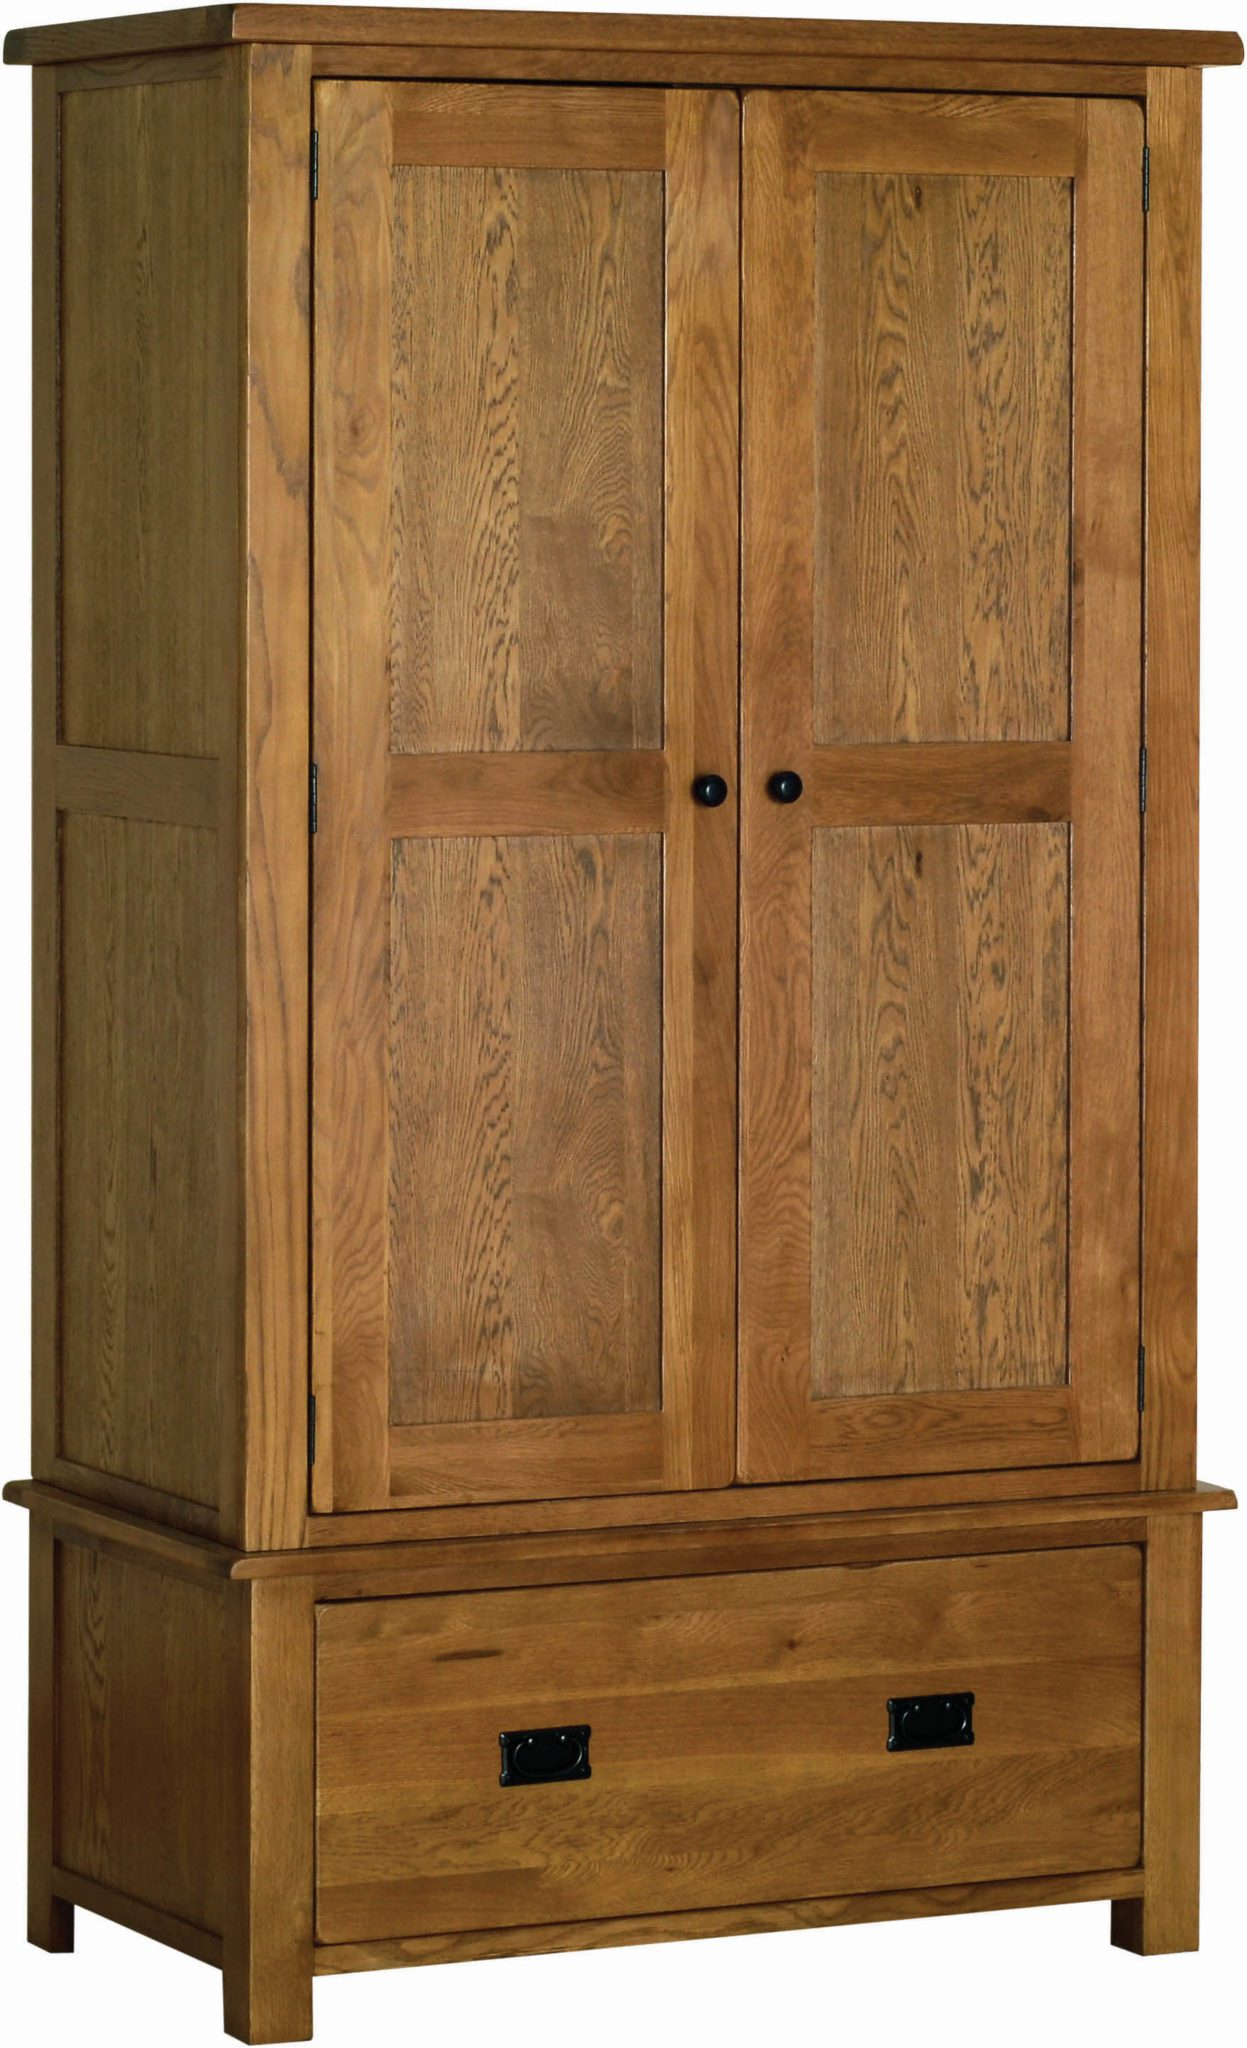 Sudbury Oak Double wardrobe with Drawer. rustic oak shaker style. 1 large drawer, 2 doors with rustic black round knobs. SRW30